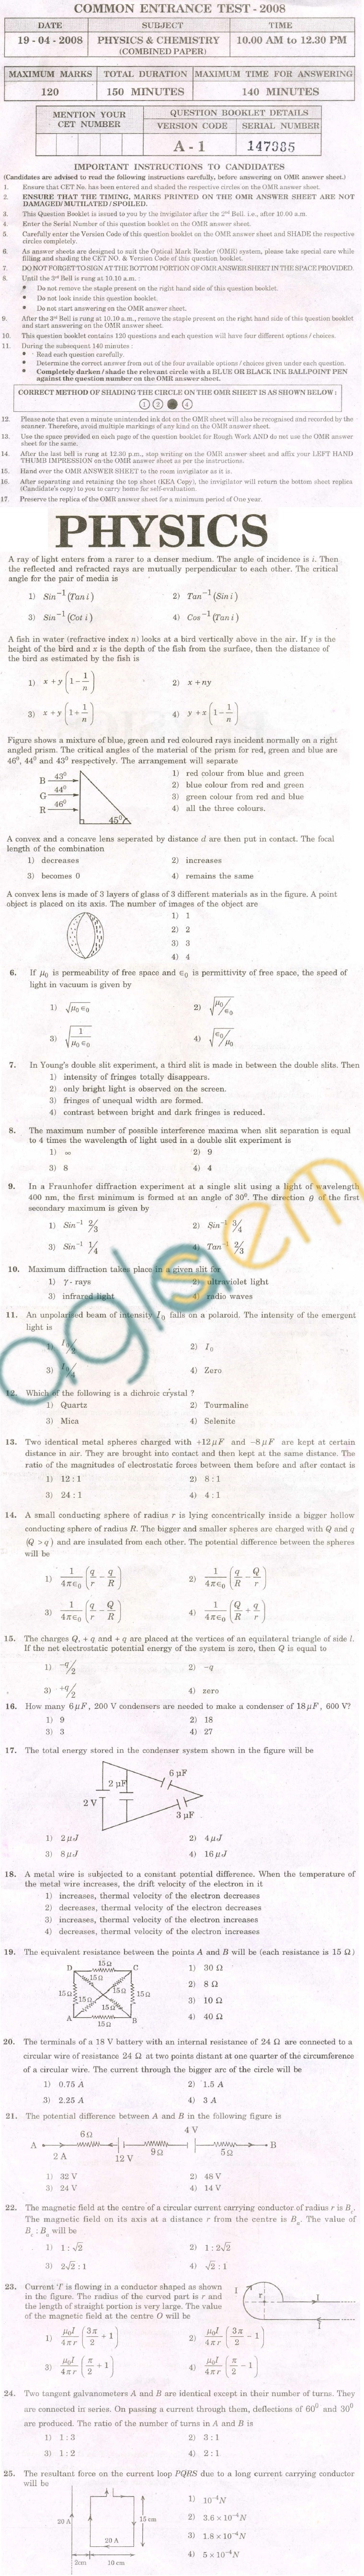 KCET 2008 Question Paper - Physics And Chemistry (Combined)